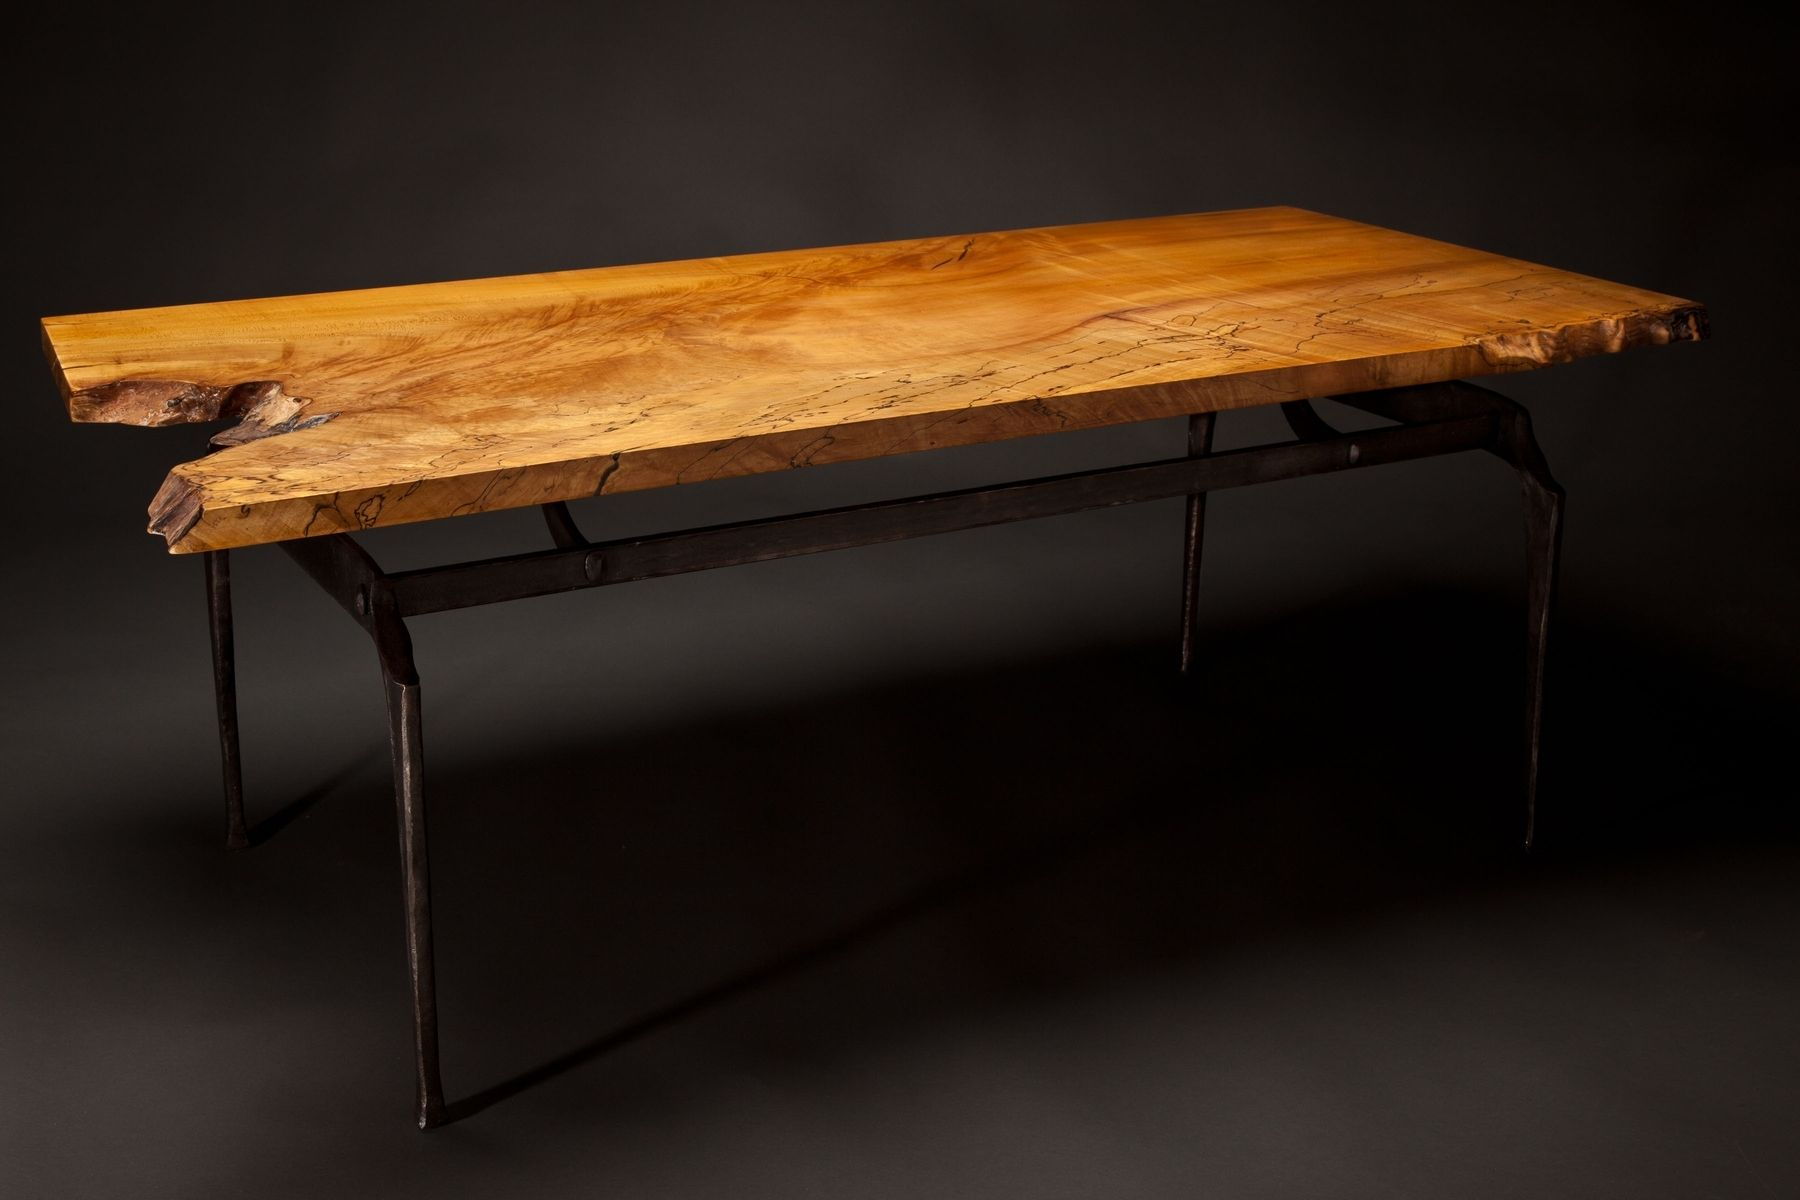 Hand Made Forged Steel And Spalted Maple Coffee Table by Rising